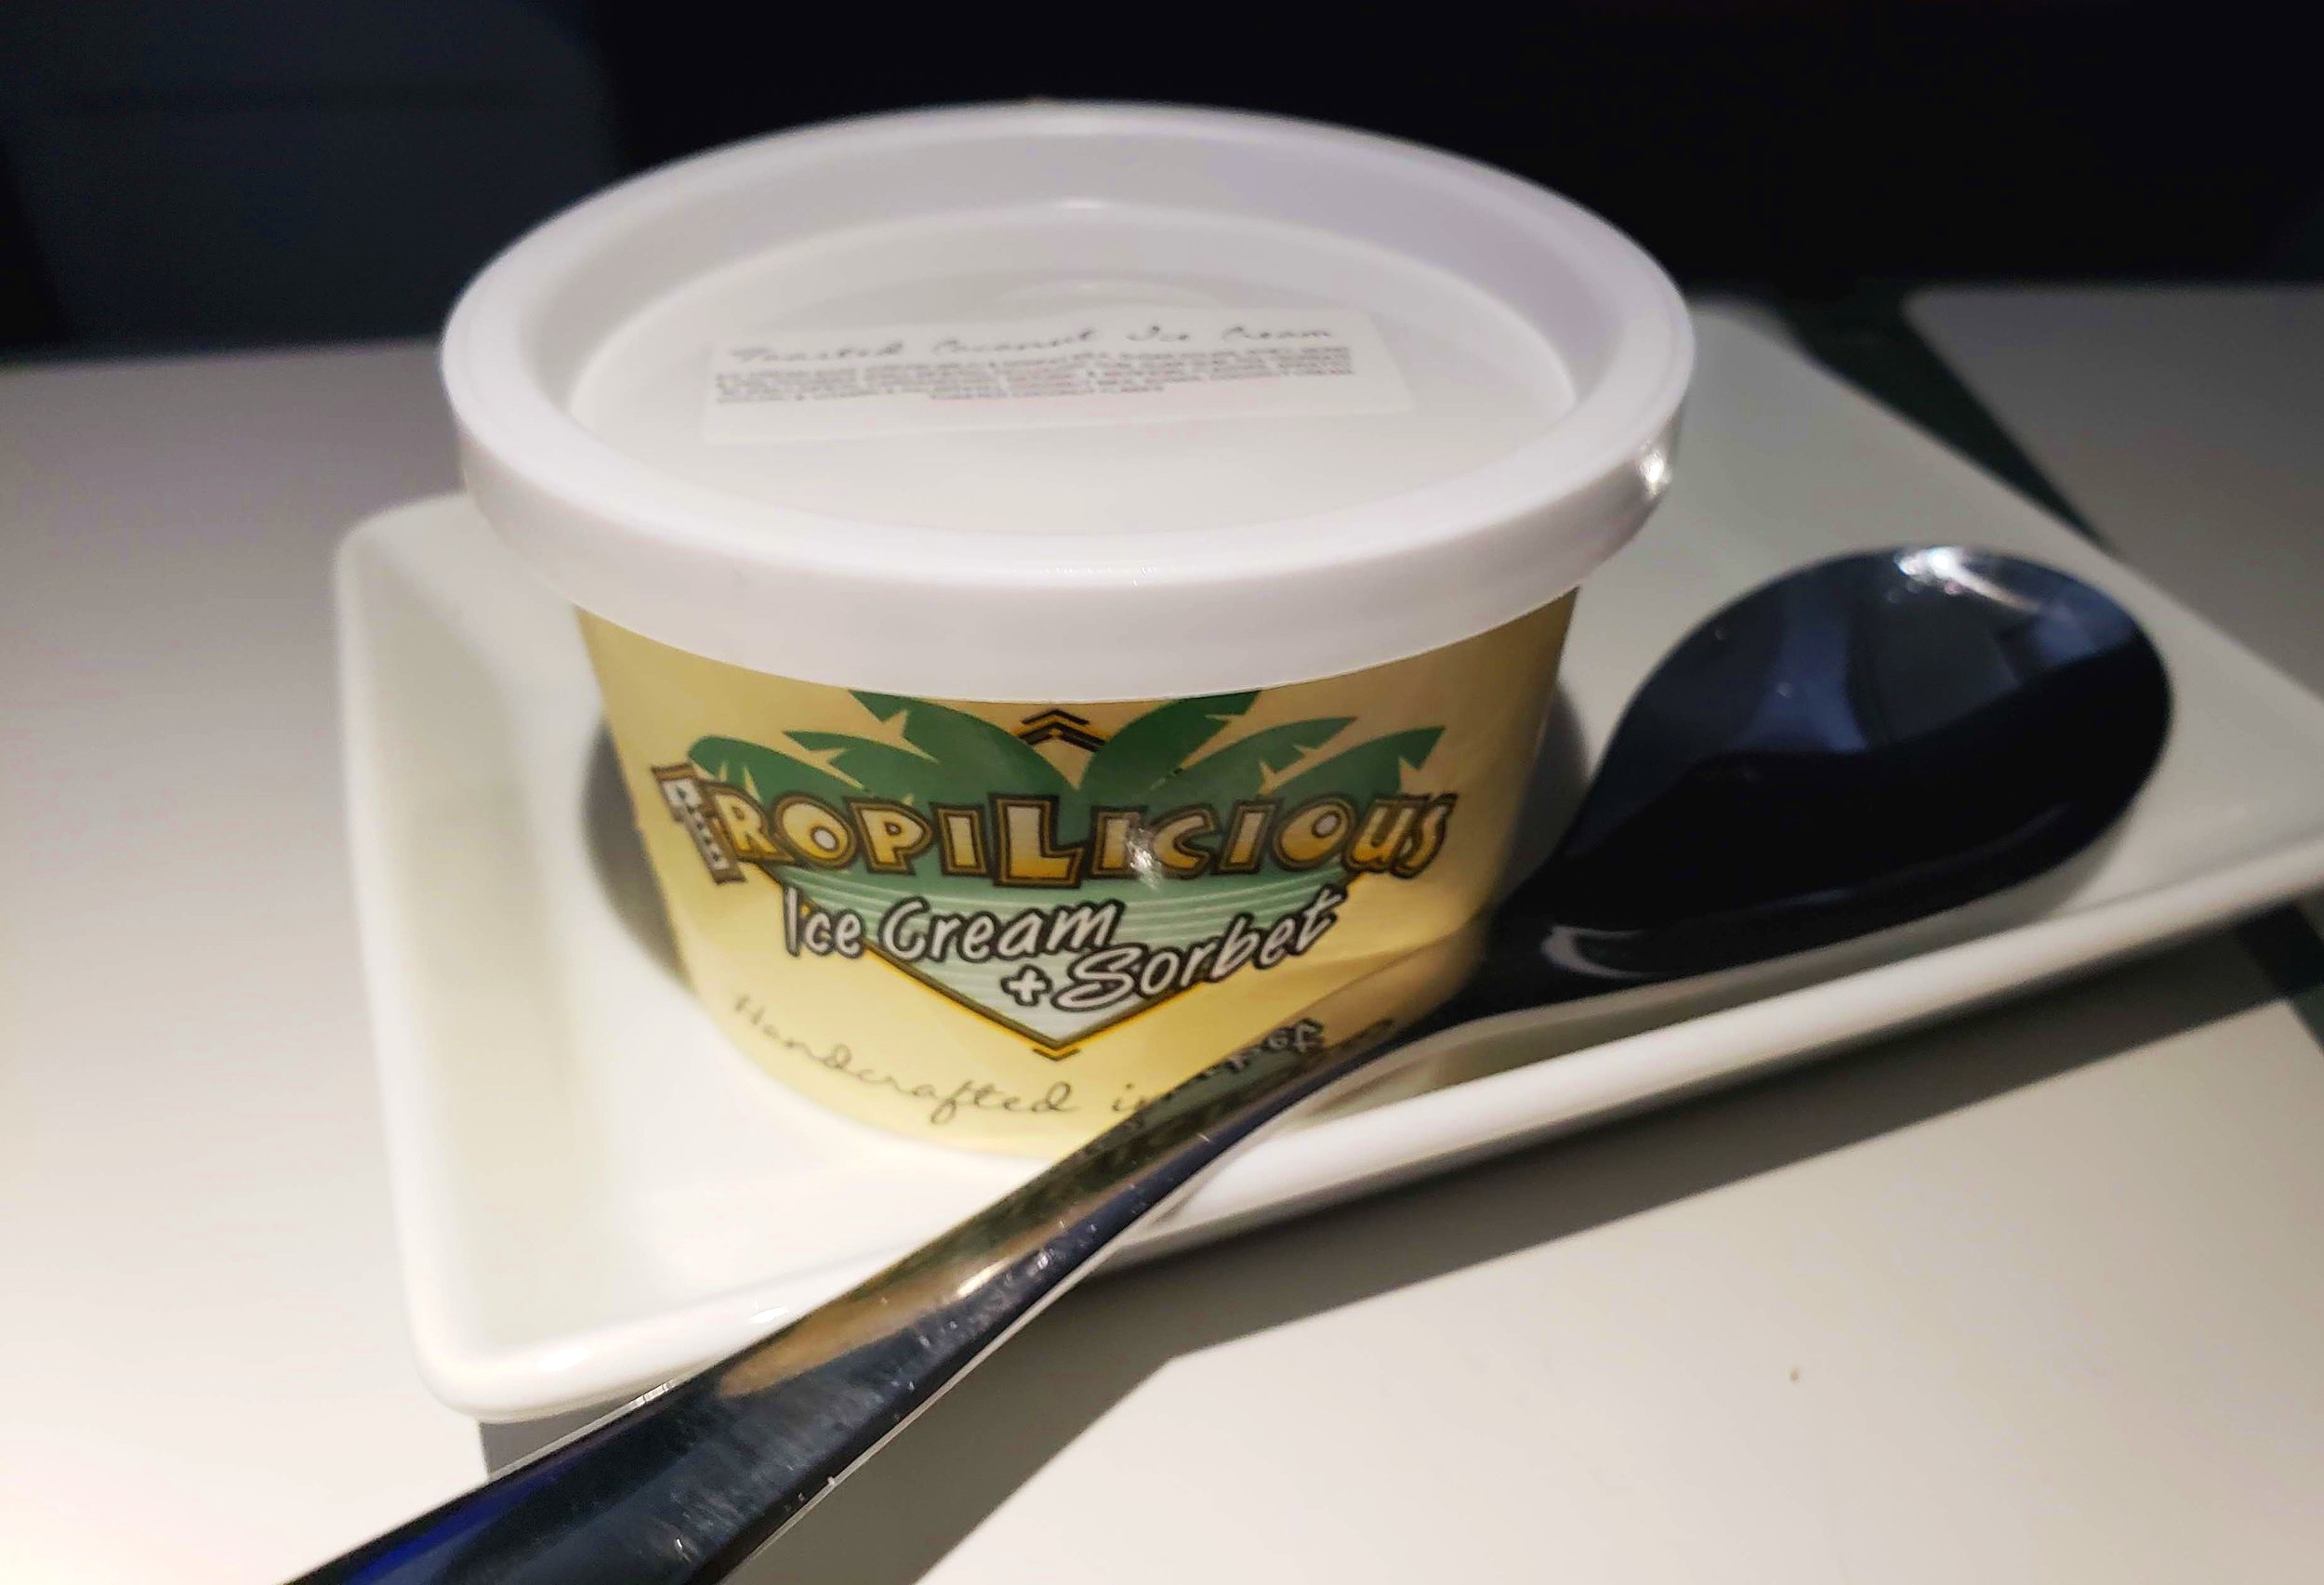 Dessert - Finally, we finished our meal with a container of coconut sorbet. It was a nice touch to our Hawai'i themed meal and refreshing on the long flight.